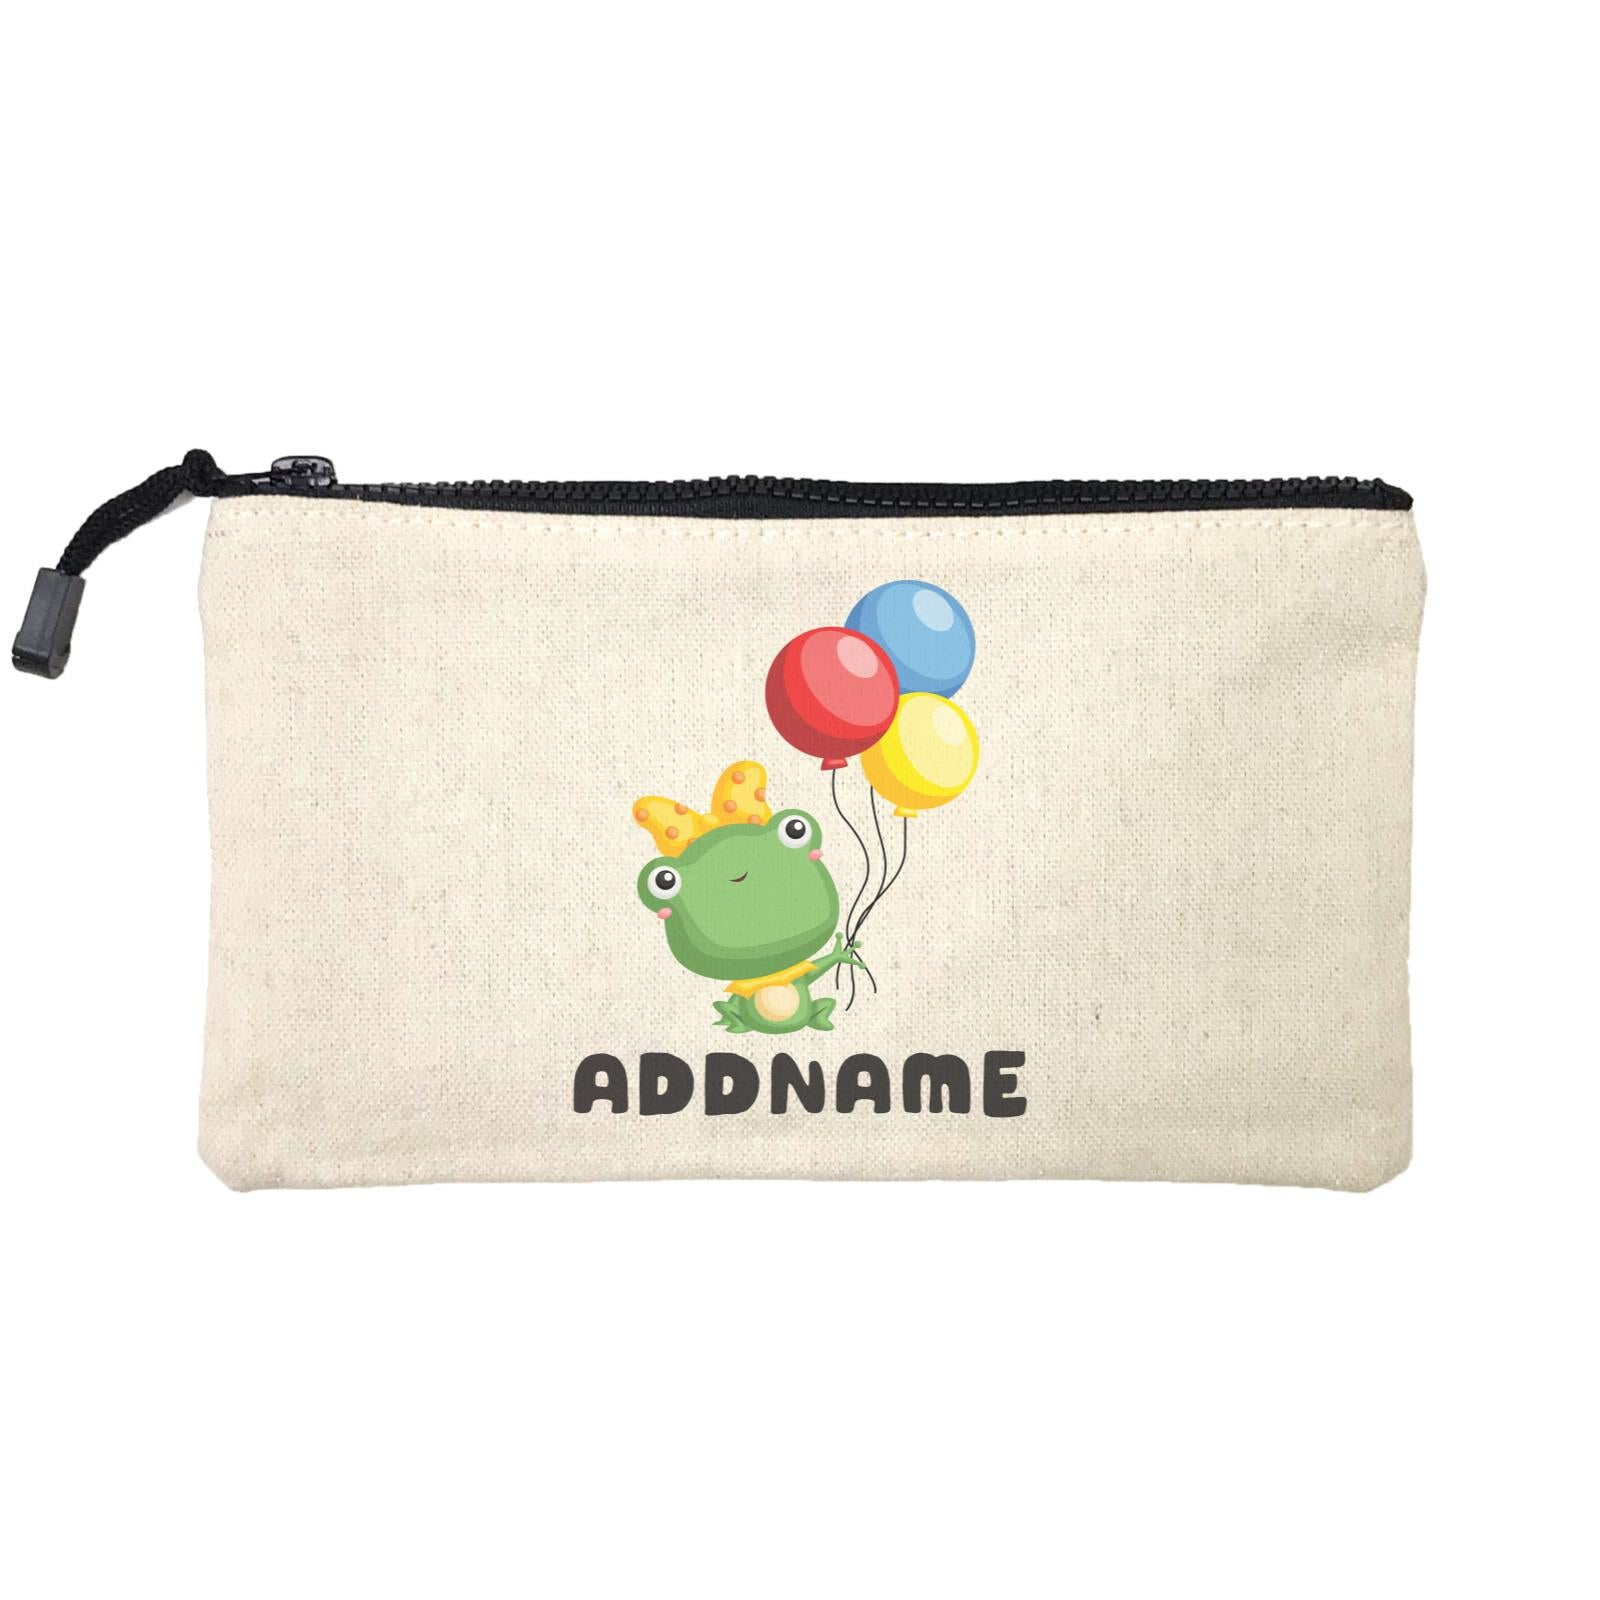 Birthday Frog Frog Girl Holding Balloons Addname Mini Accessories Stationery Pouch